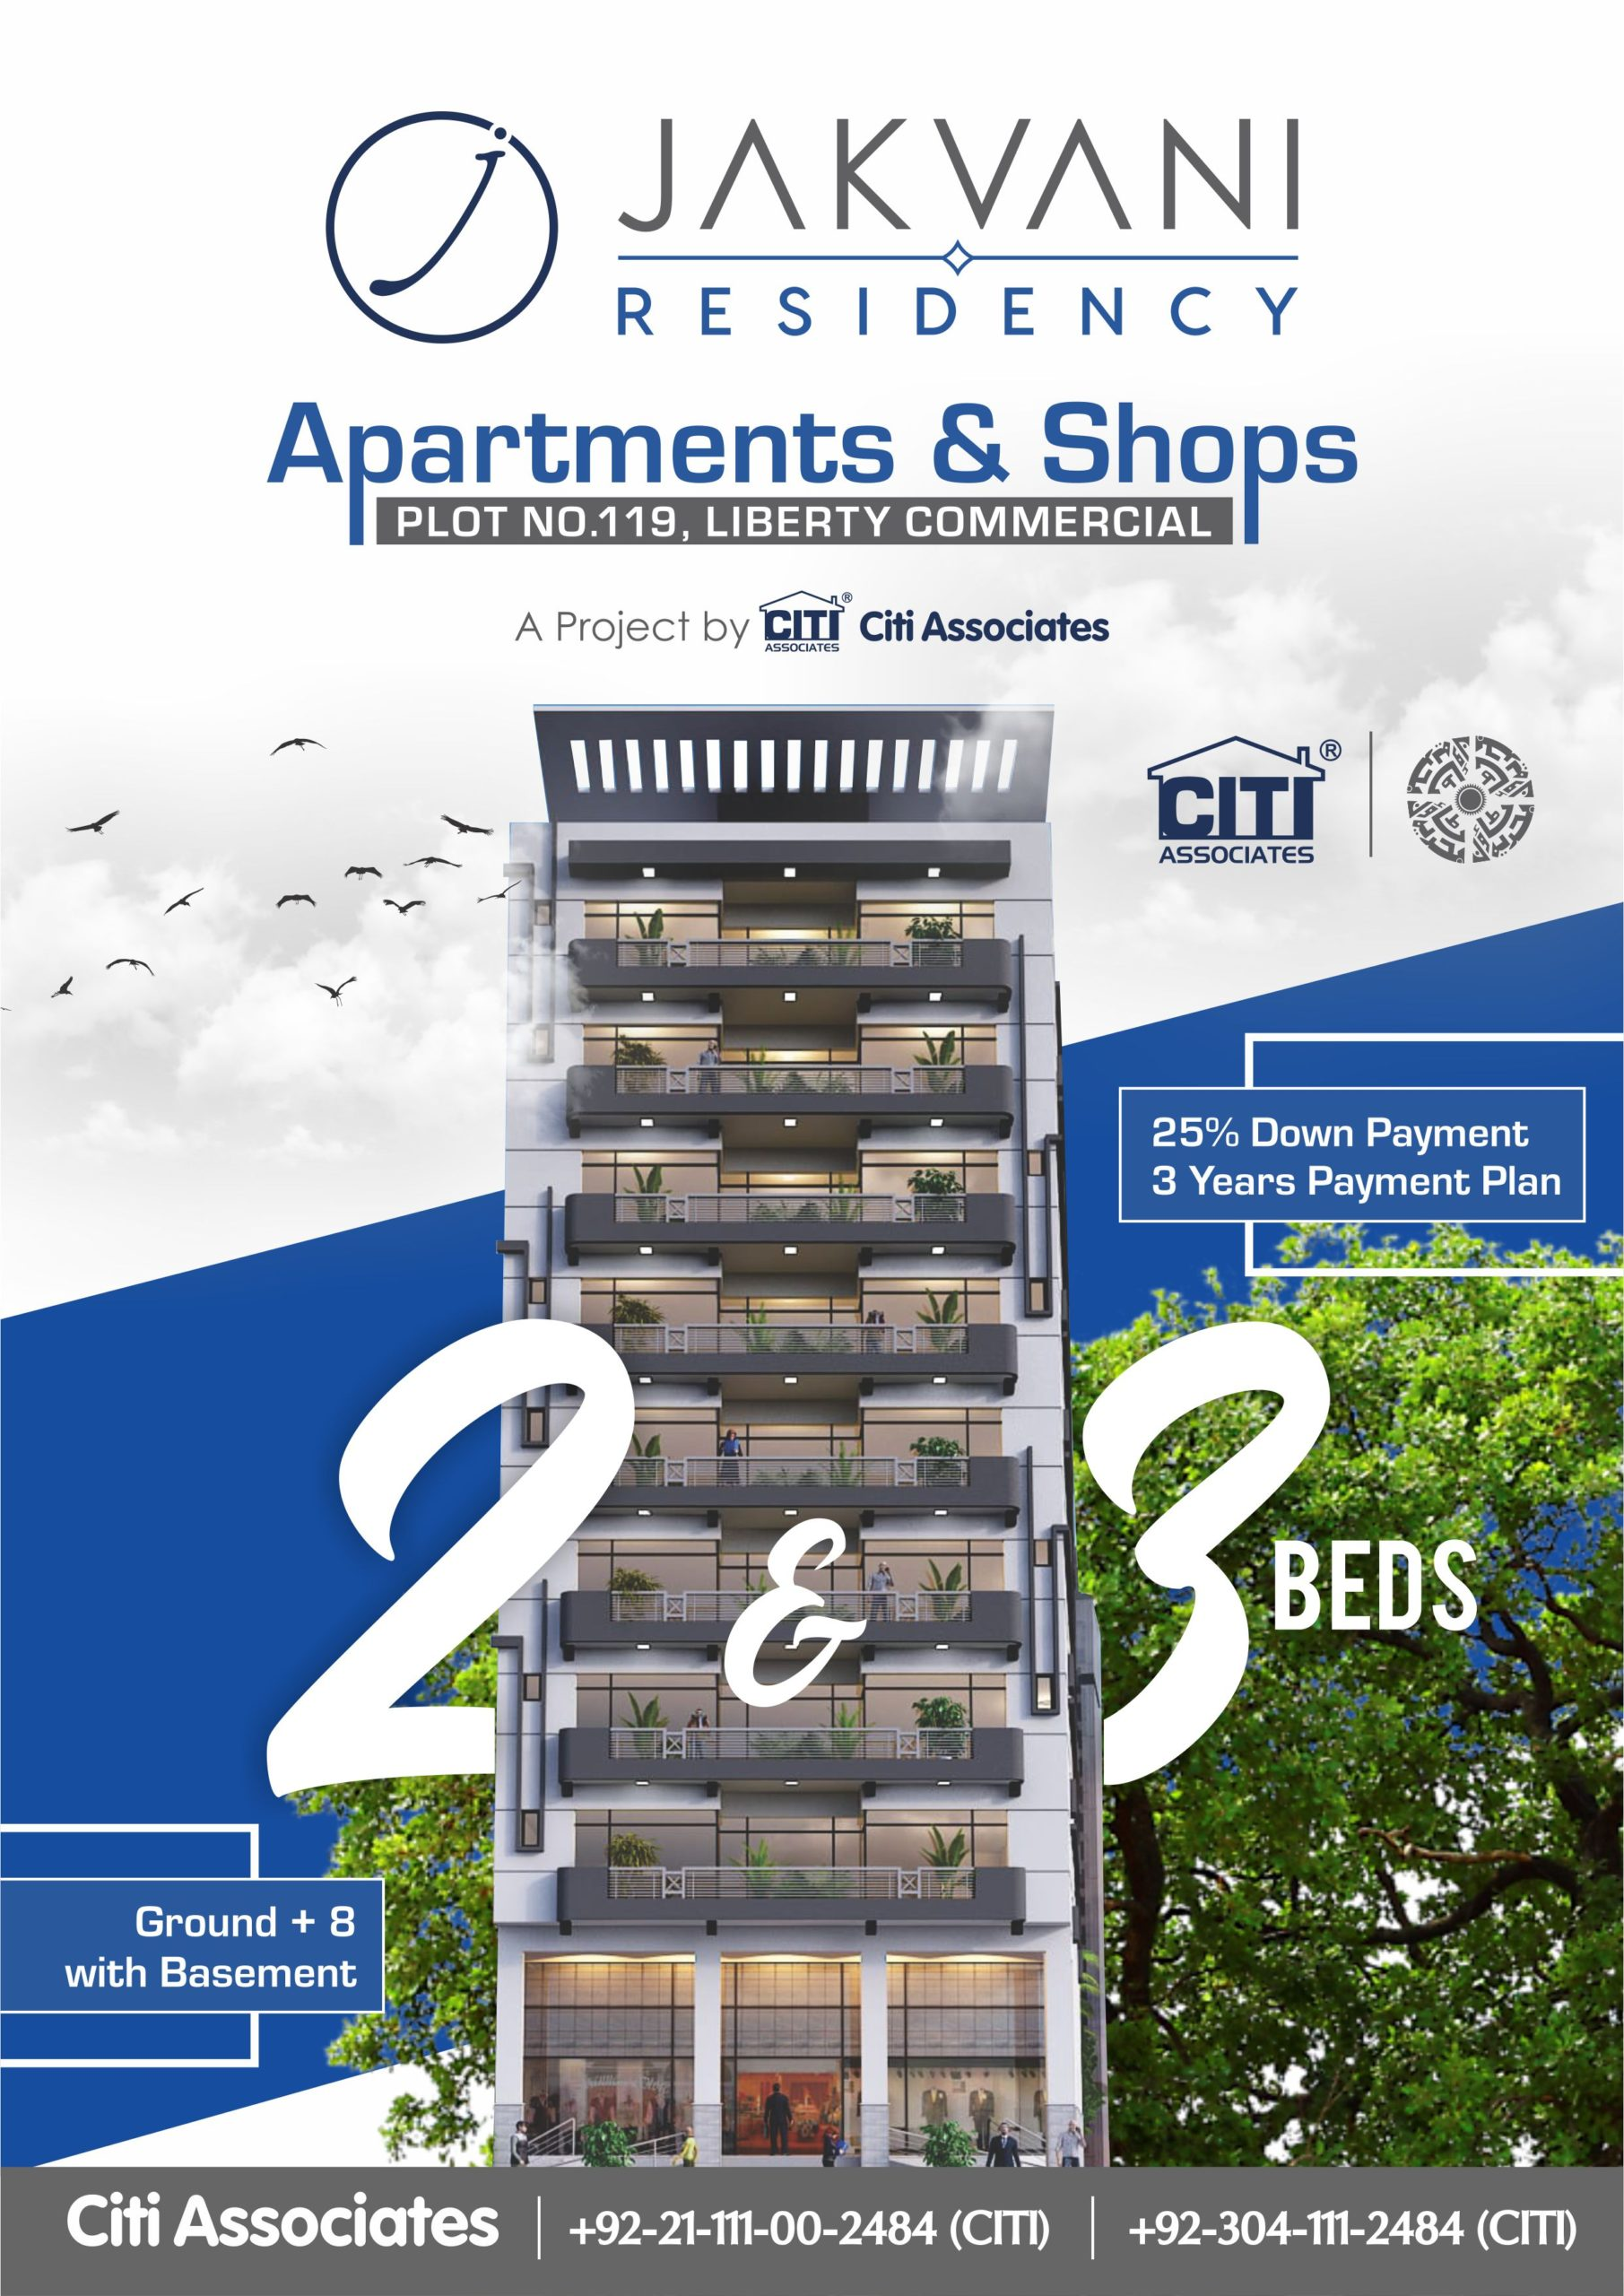 CITI Associates Launches 'Jakvani Residency' | Bahria Town Karachi